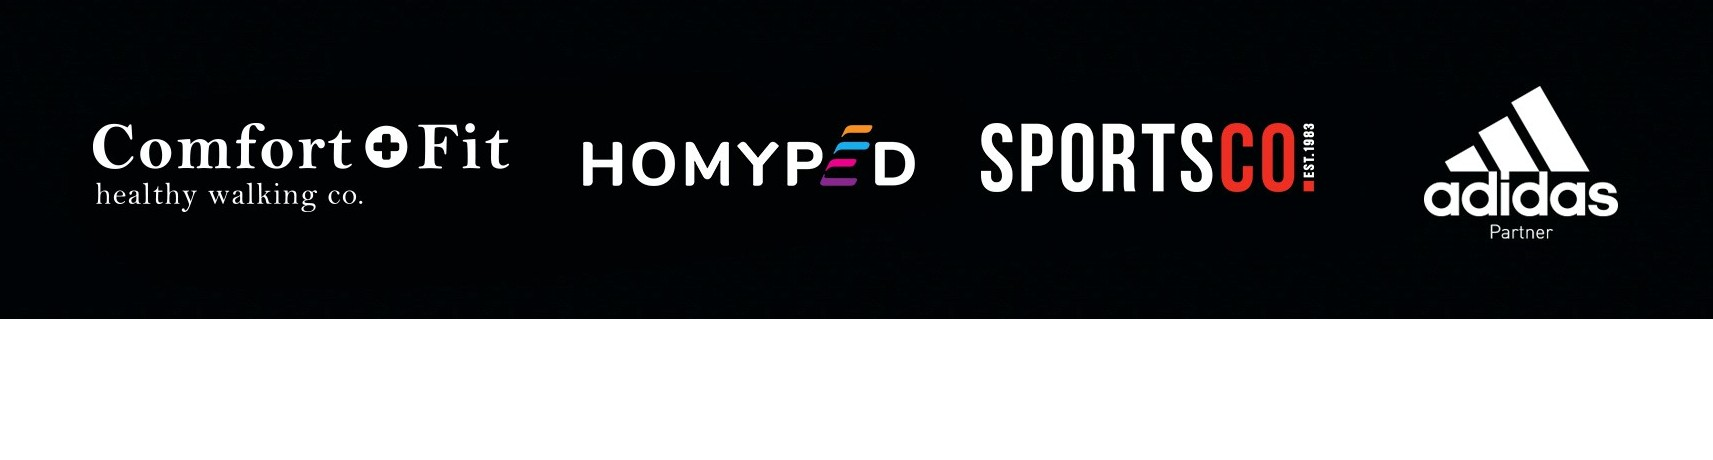 Atomic Group Sportsco